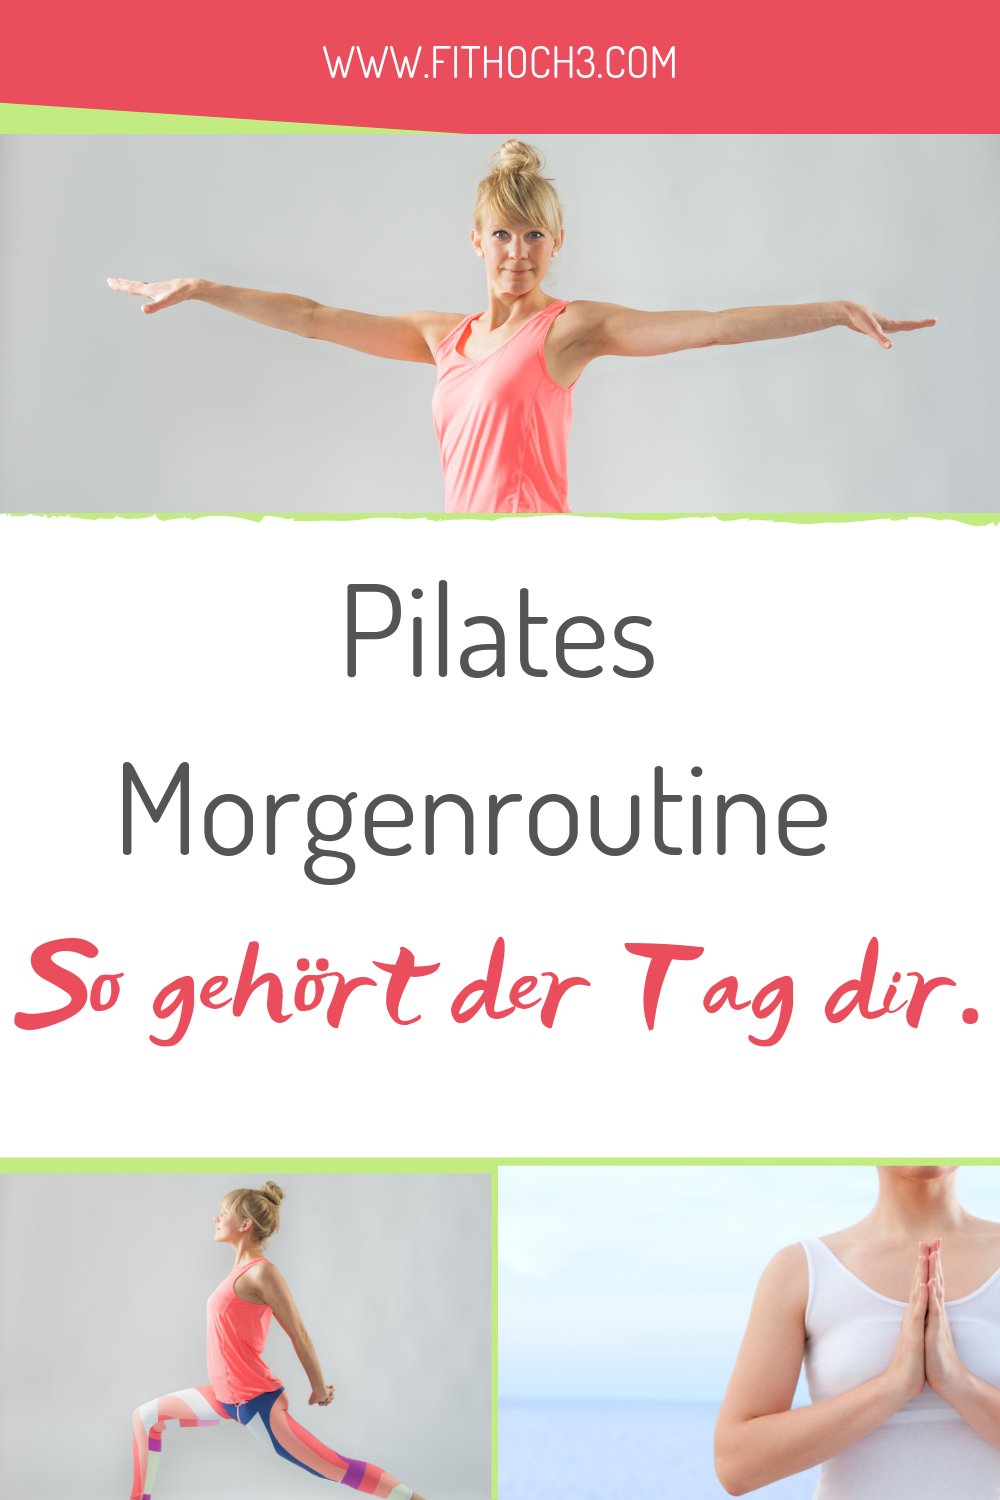 13 min Pilates morning routine for back and legs - start the day fit! -  Get up and take off? With m...